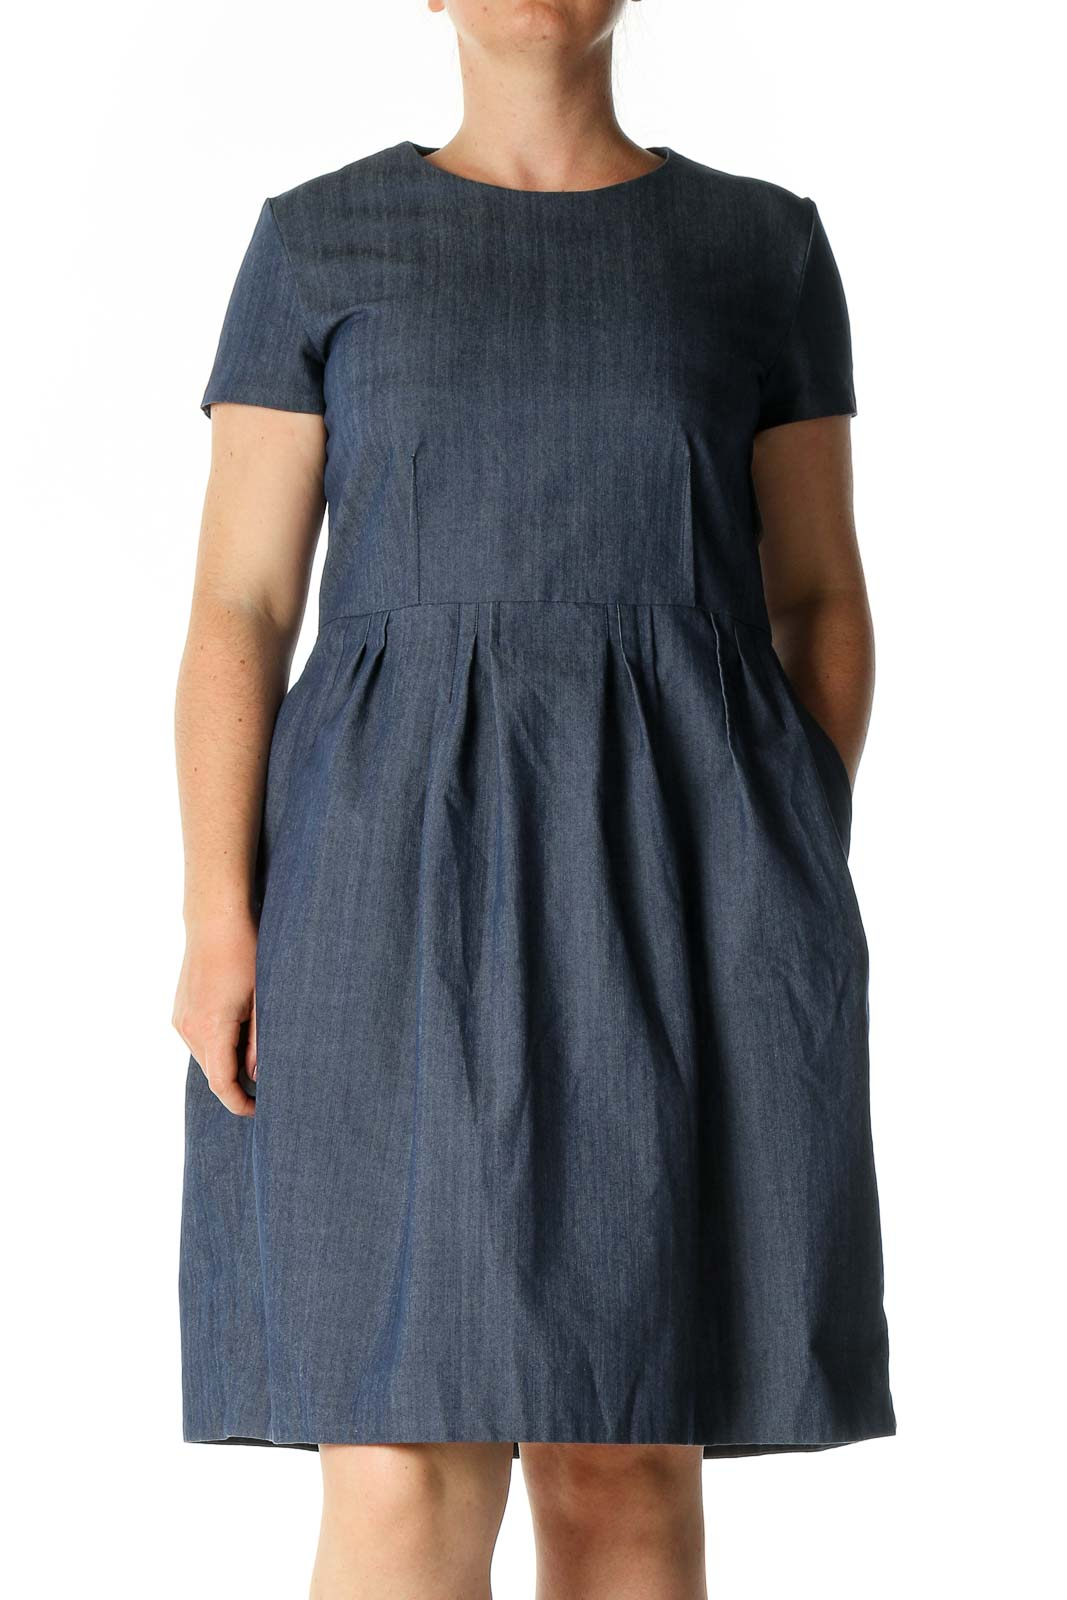 Gray Solid Casual A-Line Dress Front